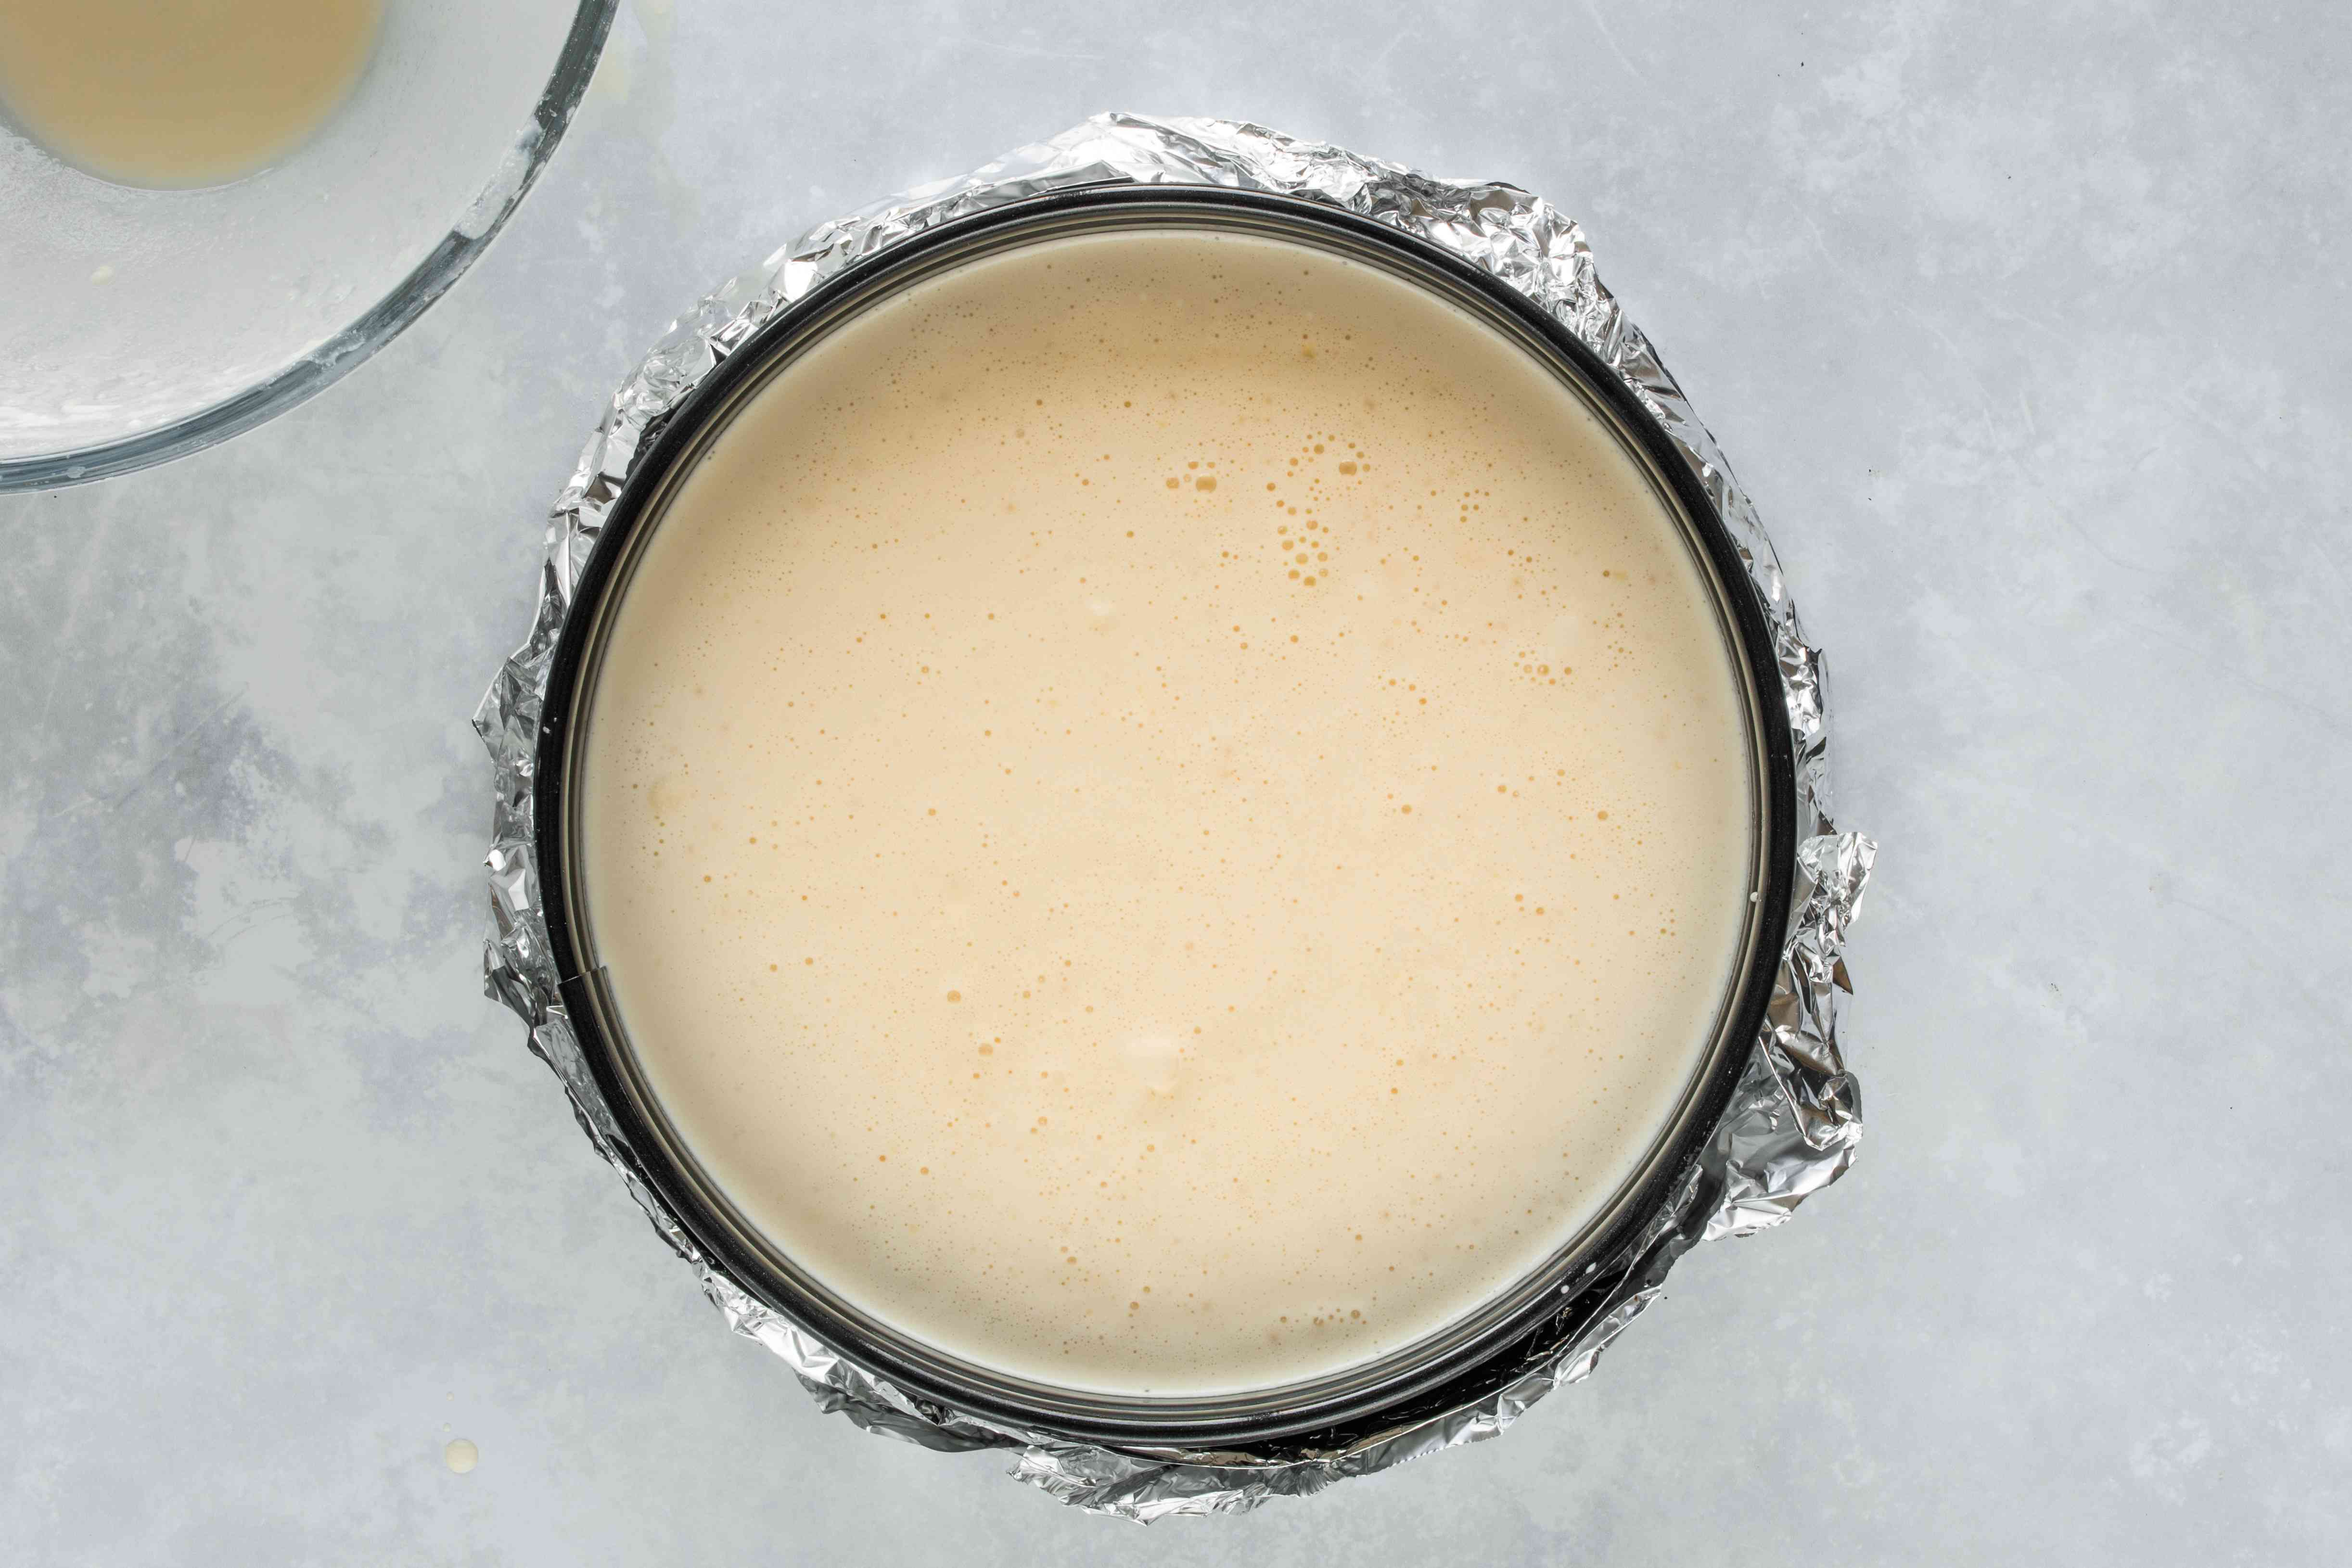 Pour in the cream cheese filling